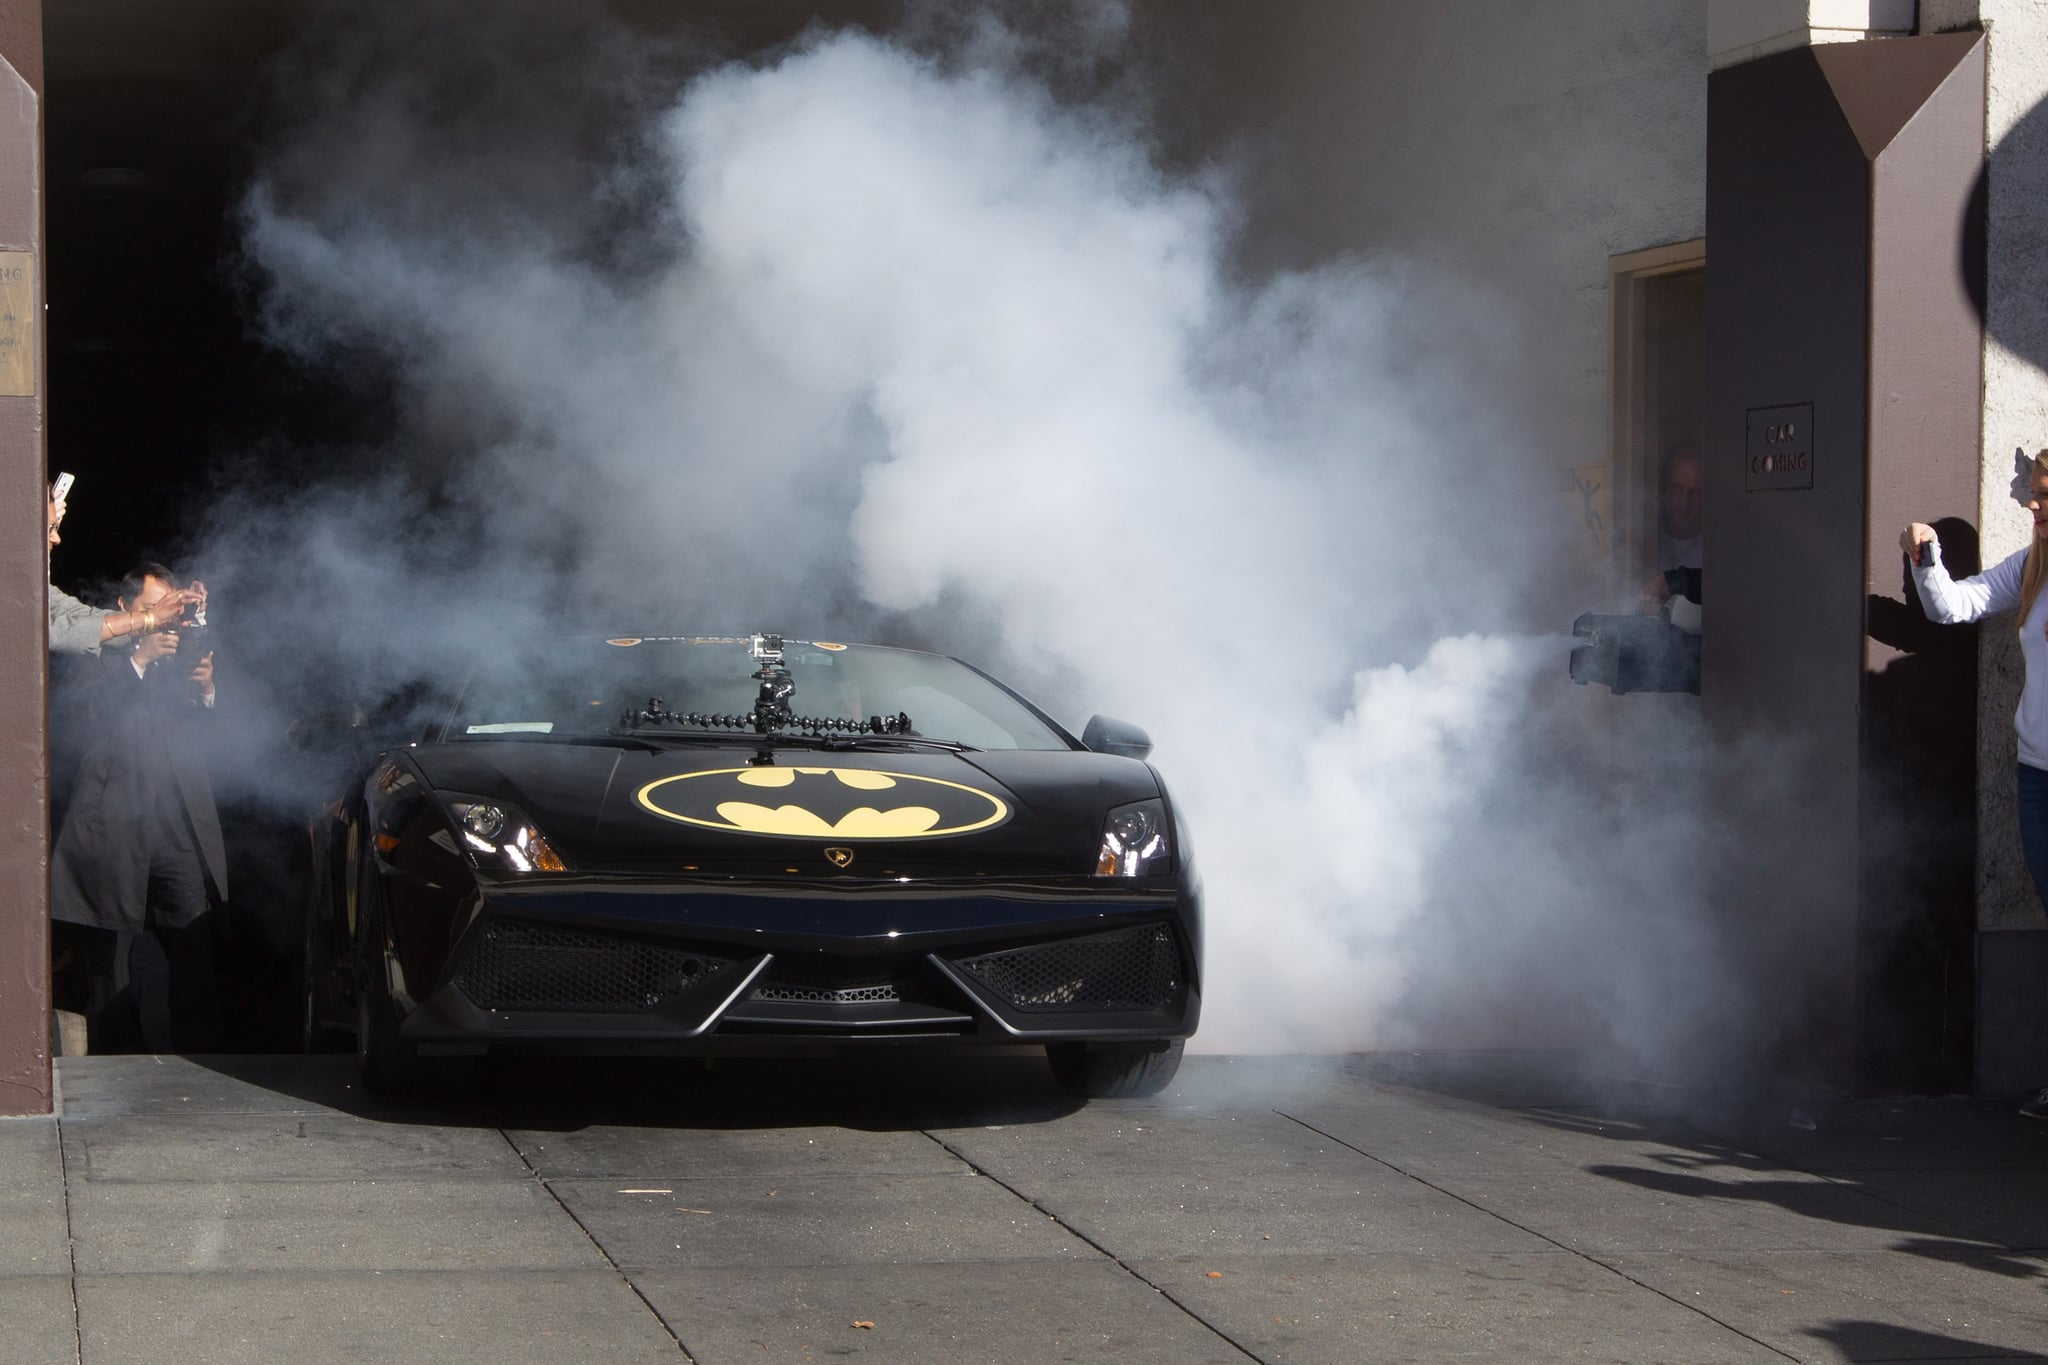 Batkid started his day out in a Lamborghini that was transformed into the Batmobile.